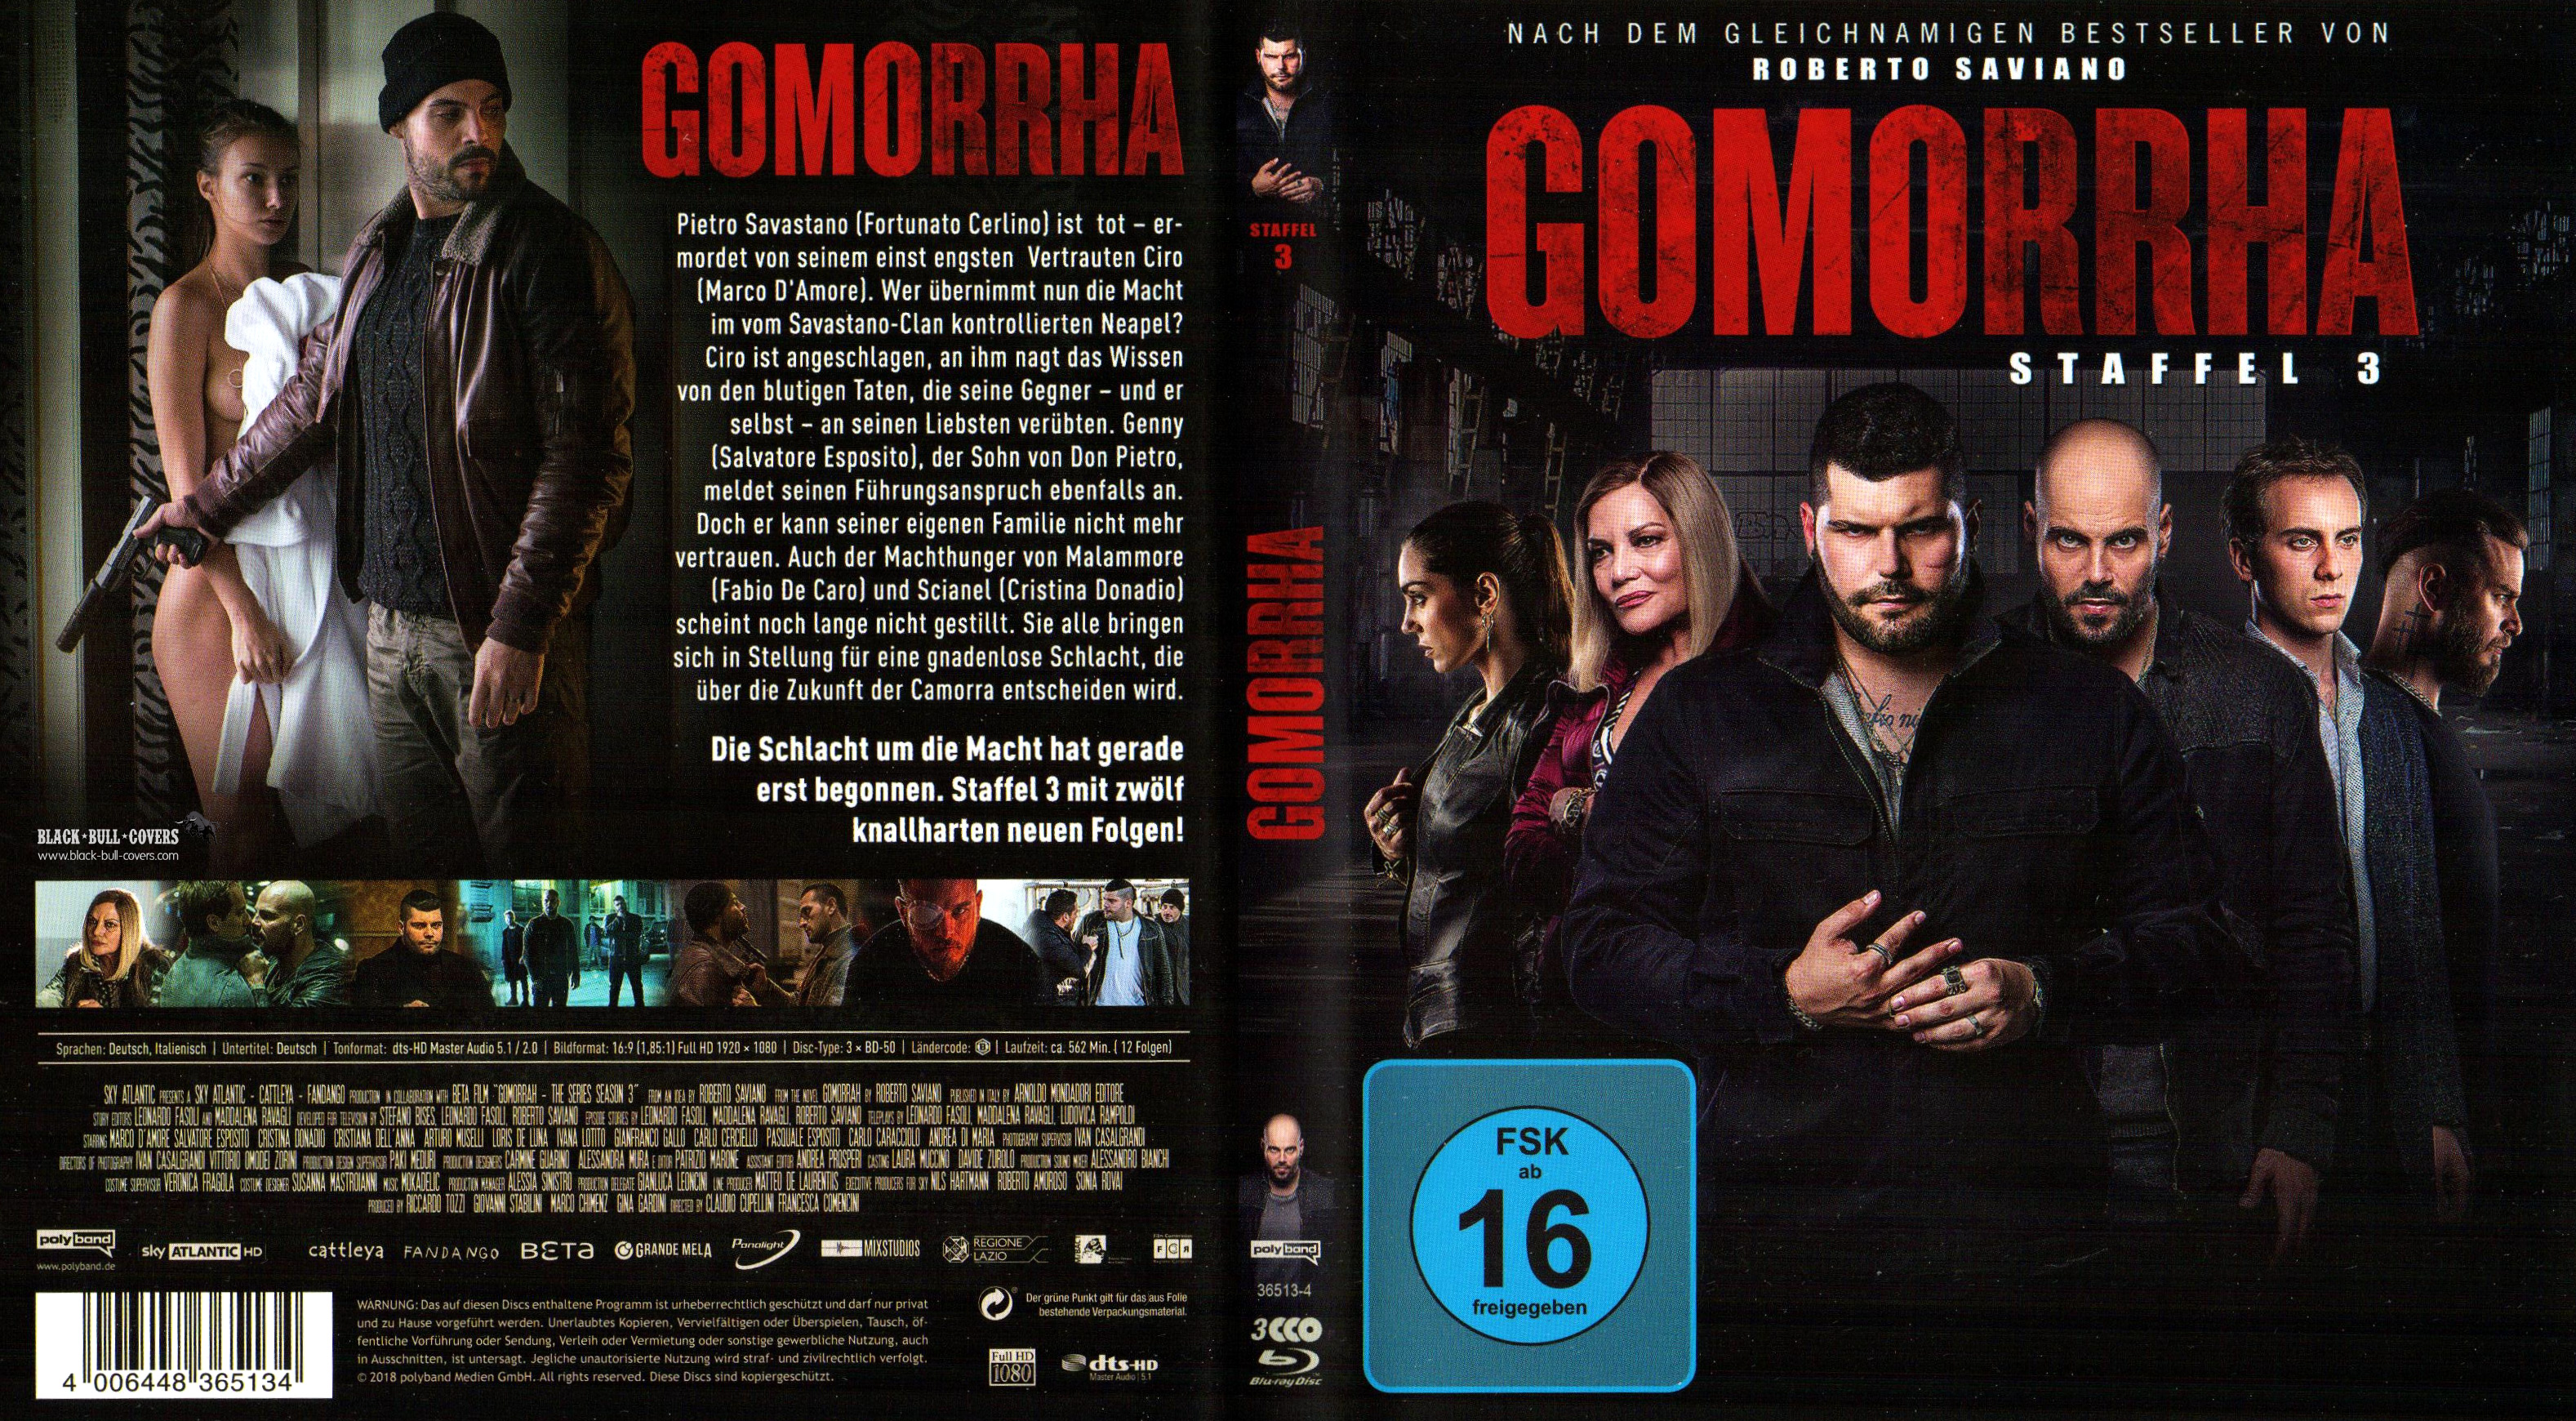 gomorrha staffel 3 season 3 s03 cover german deutsch german blu ray cover german dvd covers. Black Bedroom Furniture Sets. Home Design Ideas